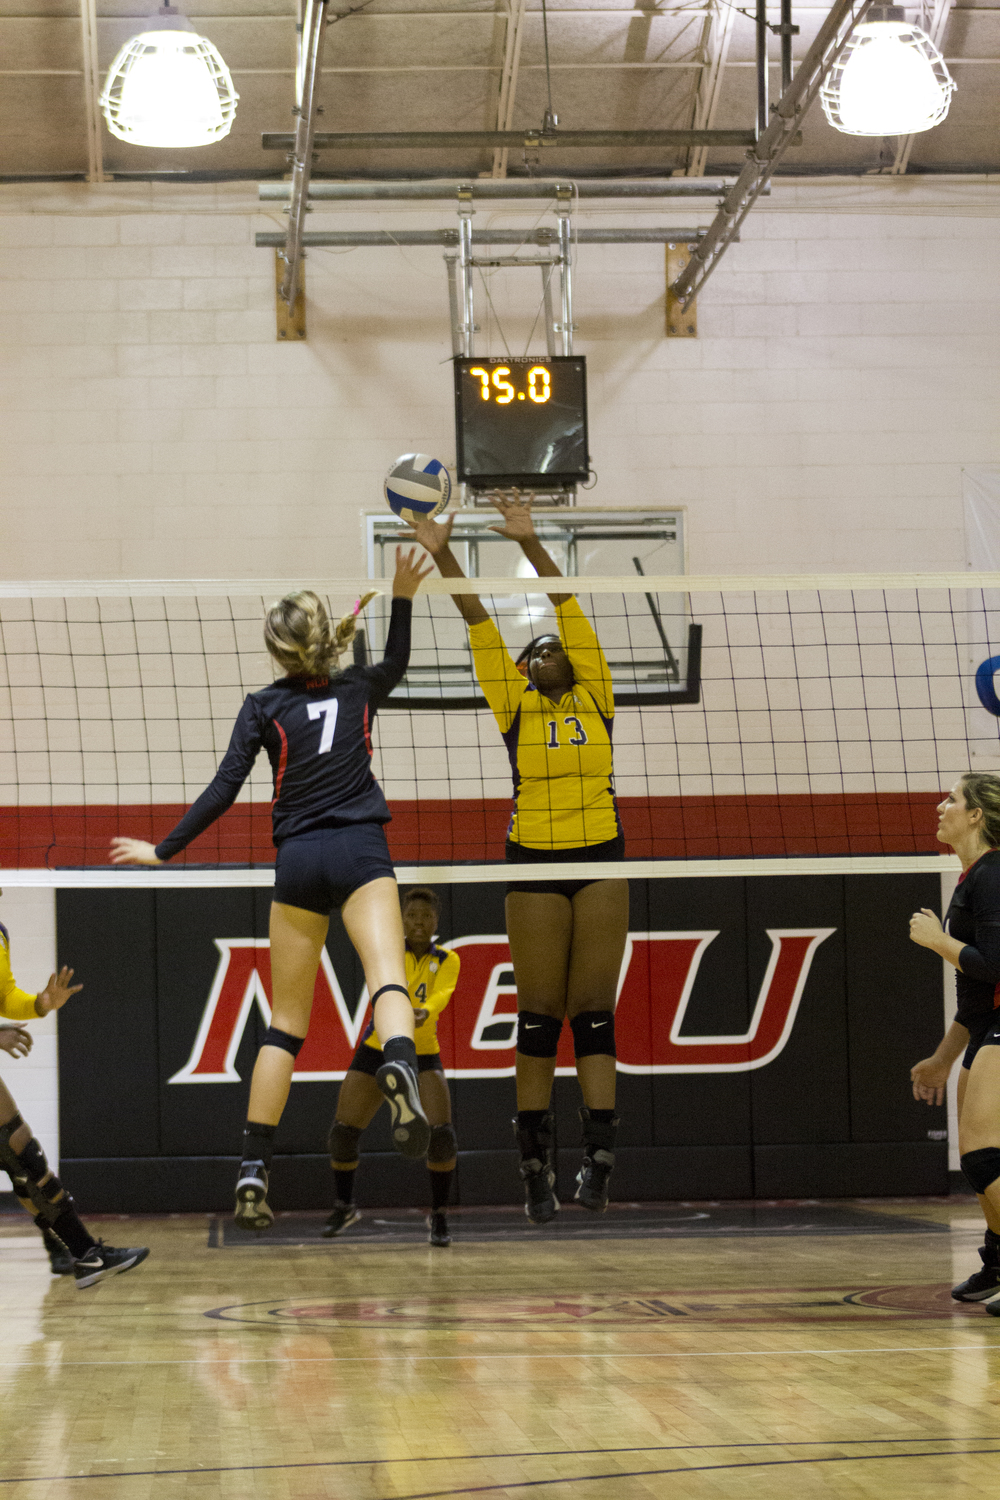 Sophomore Haley Hester dives forward to spike the ball.